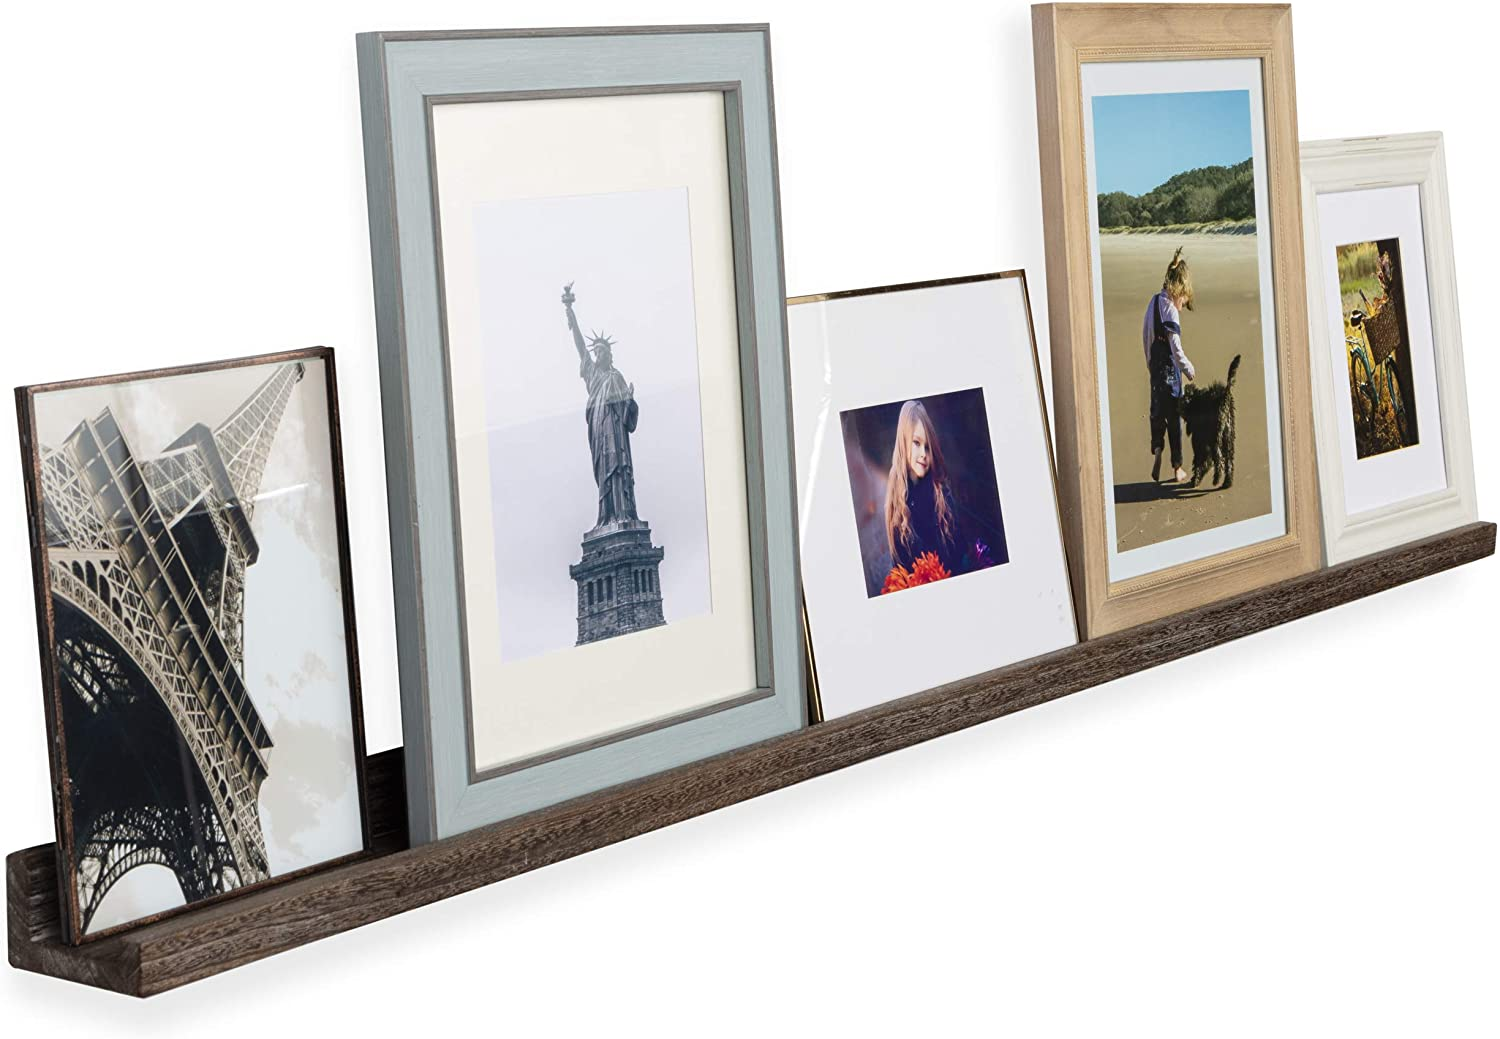 Rustic State Ted Wall 交換無料 Mount Extra Shel いつでも送料無料 Picture Ledge Narrow Long